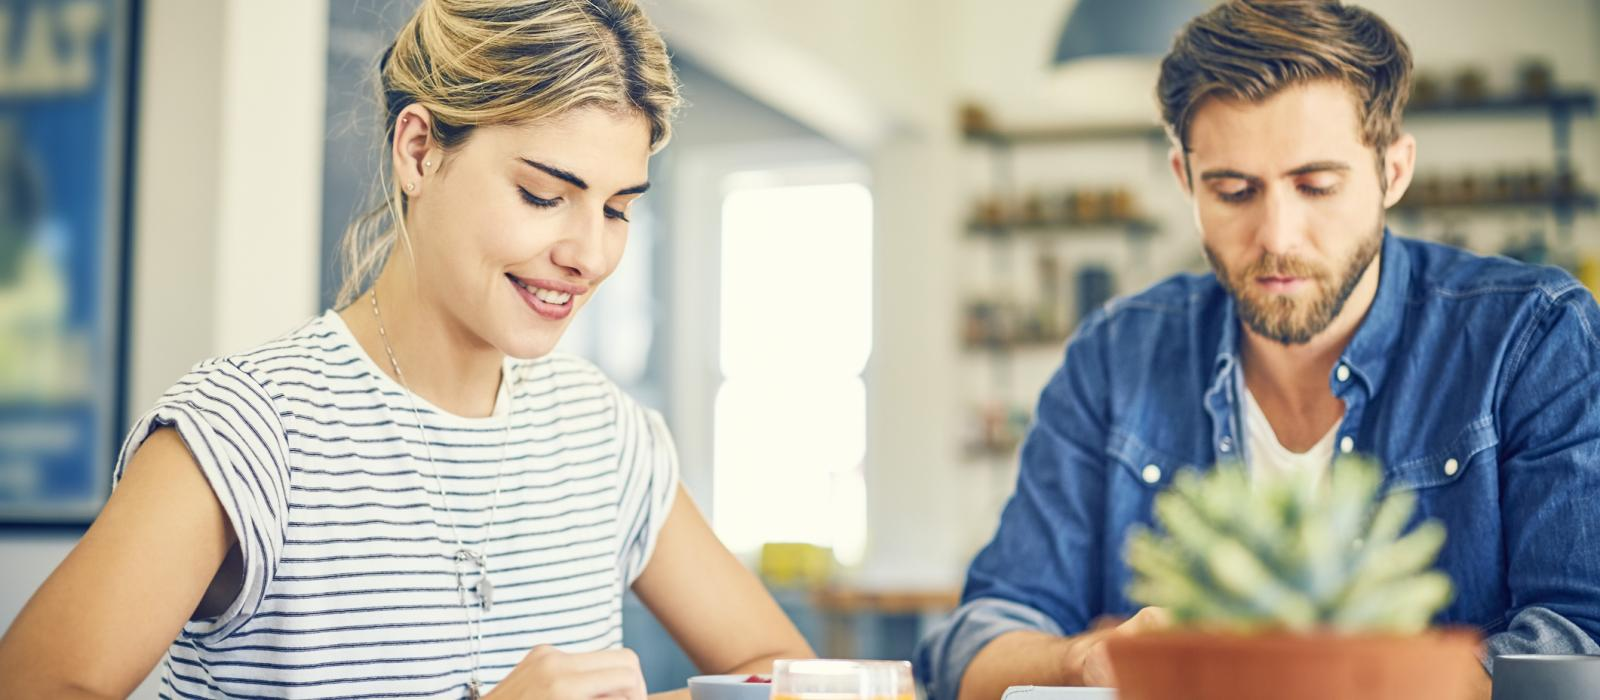 Smiling young woman using digital tablet by man at table. Couple is sitting at table. They are in casuals.